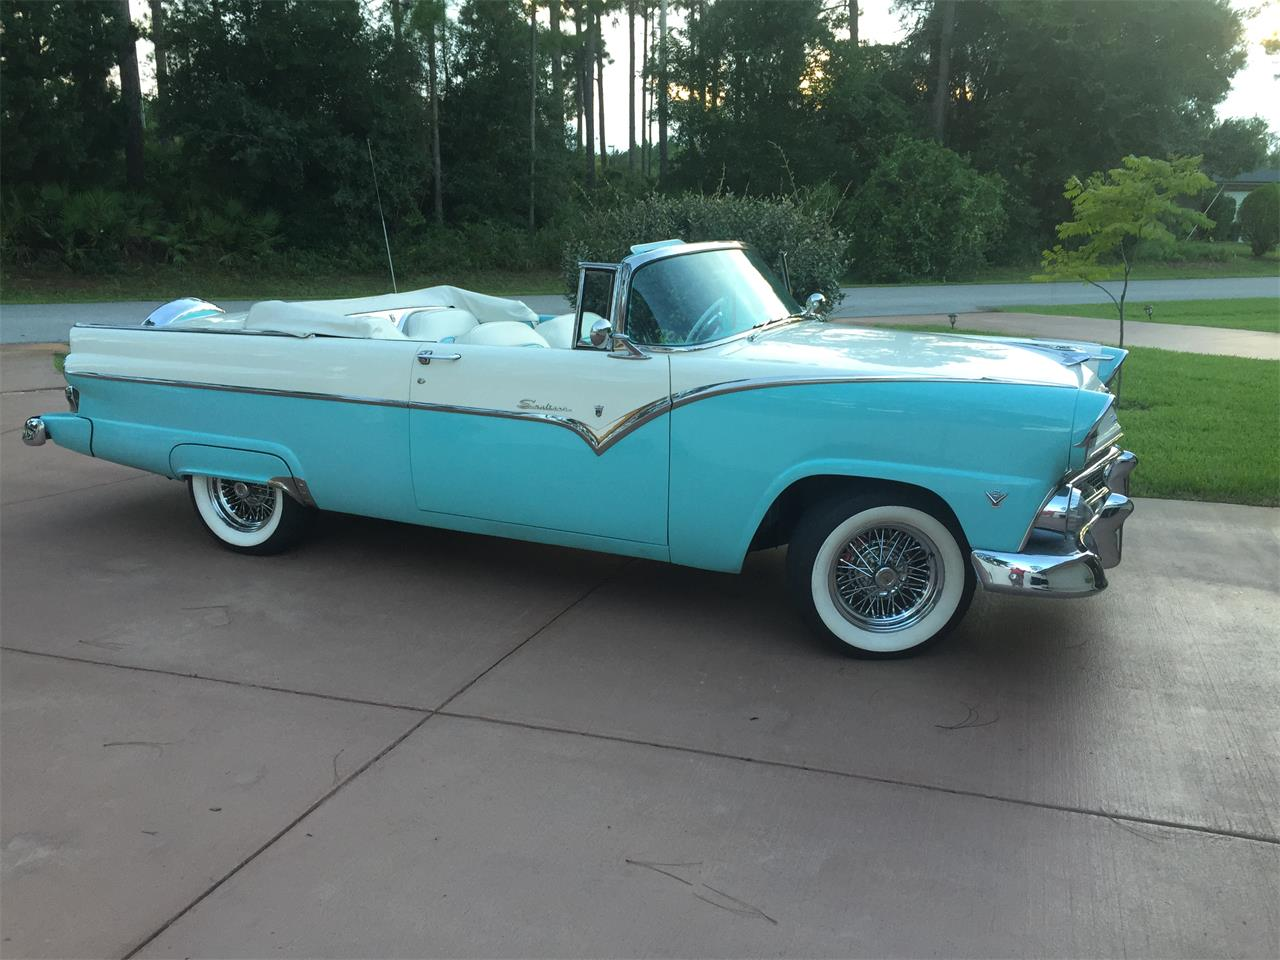 Large Picture of Classic '55 Ford Sunliner Offered by a Private Seller - L3IT